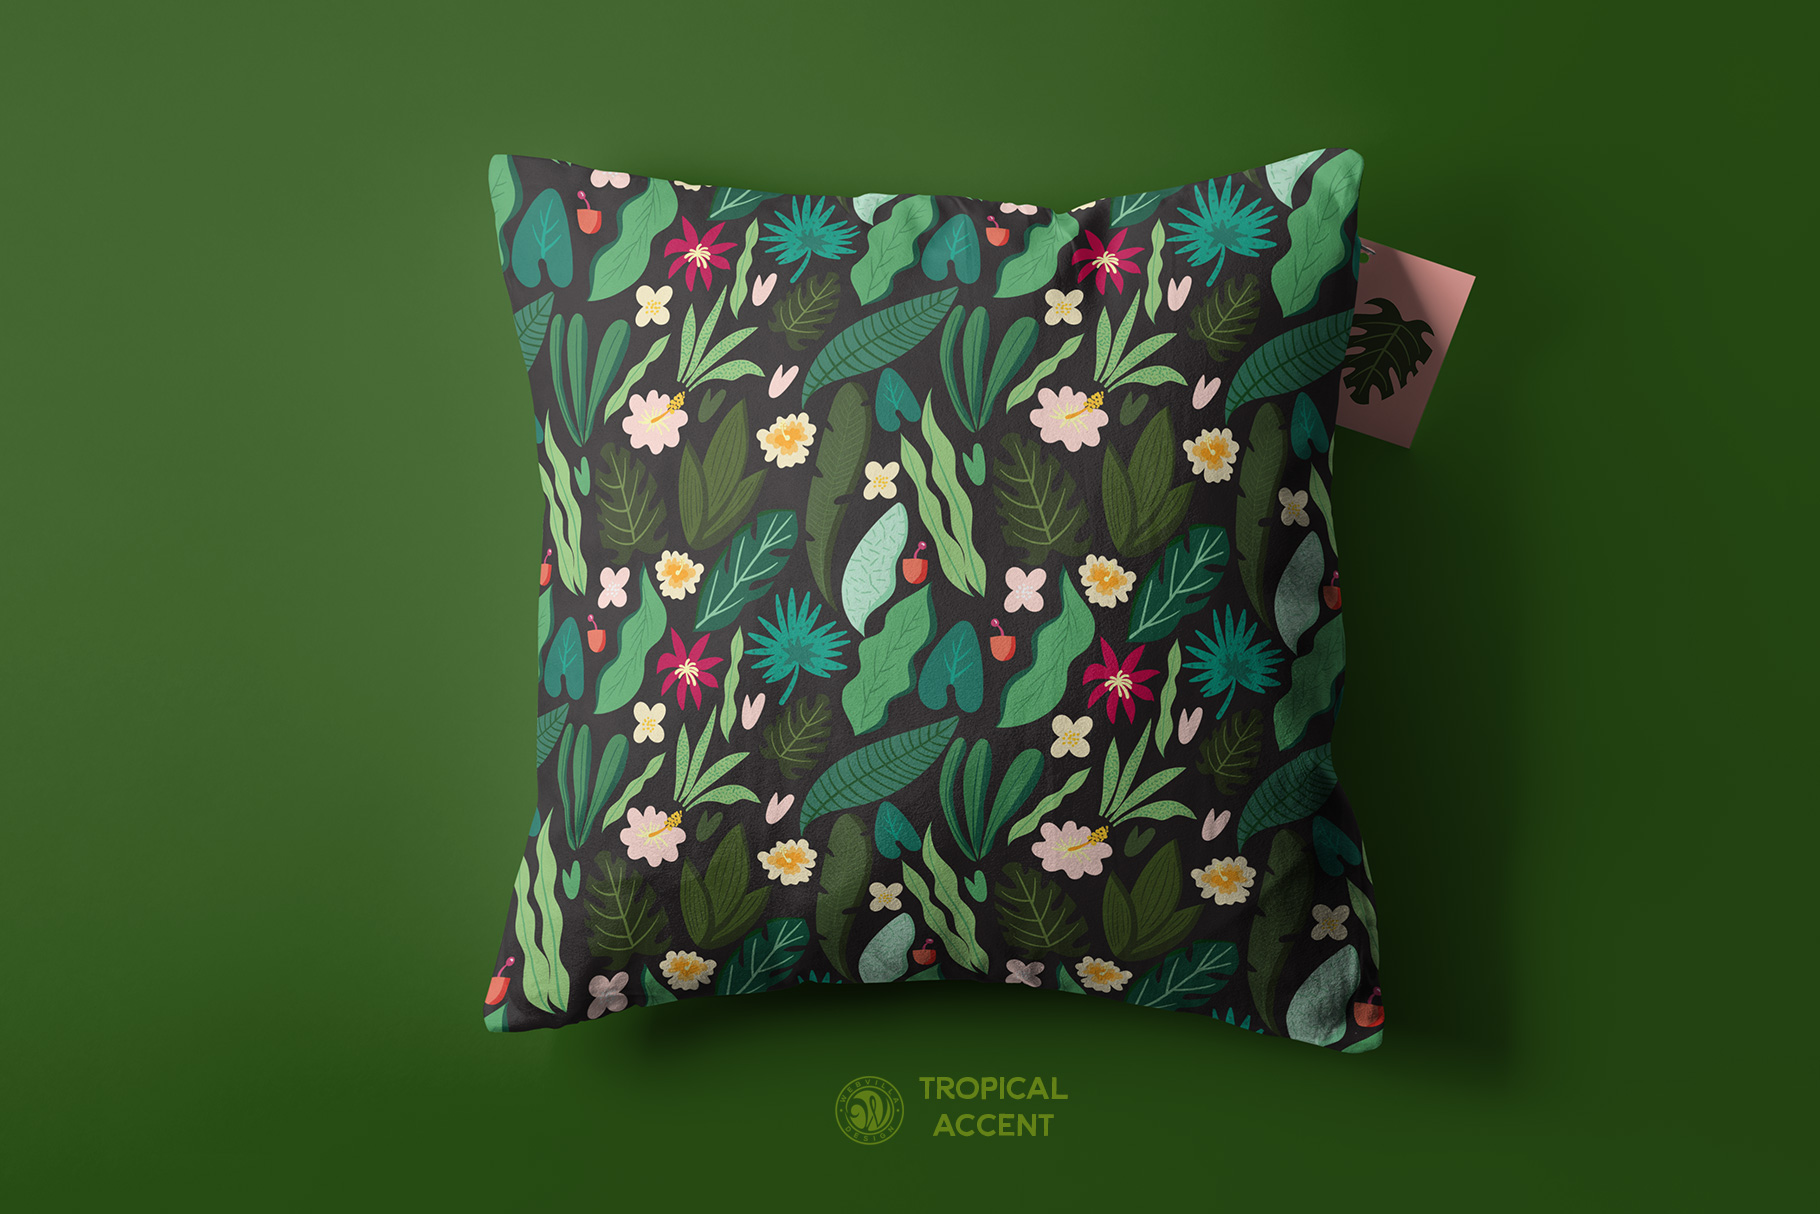 Tropical Accent Graphic Illustrations By webvilla - Image 3